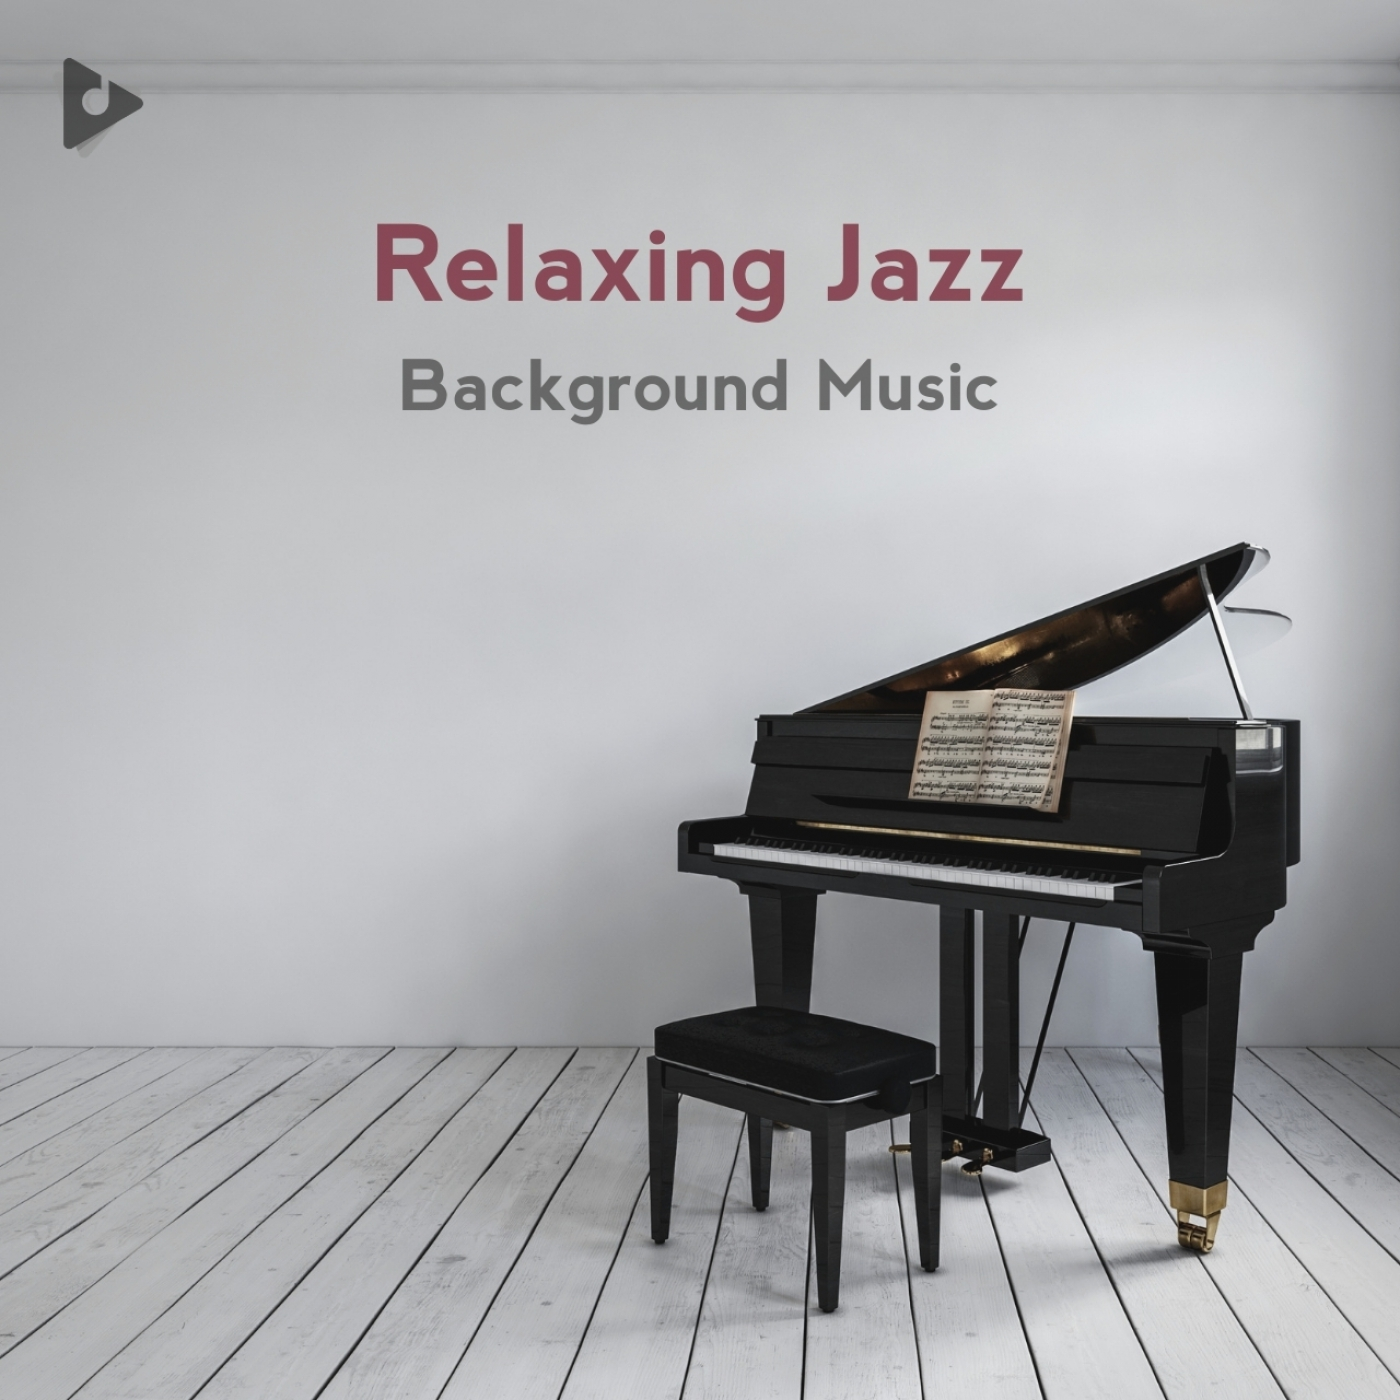 Relaxing Jazz Background Music